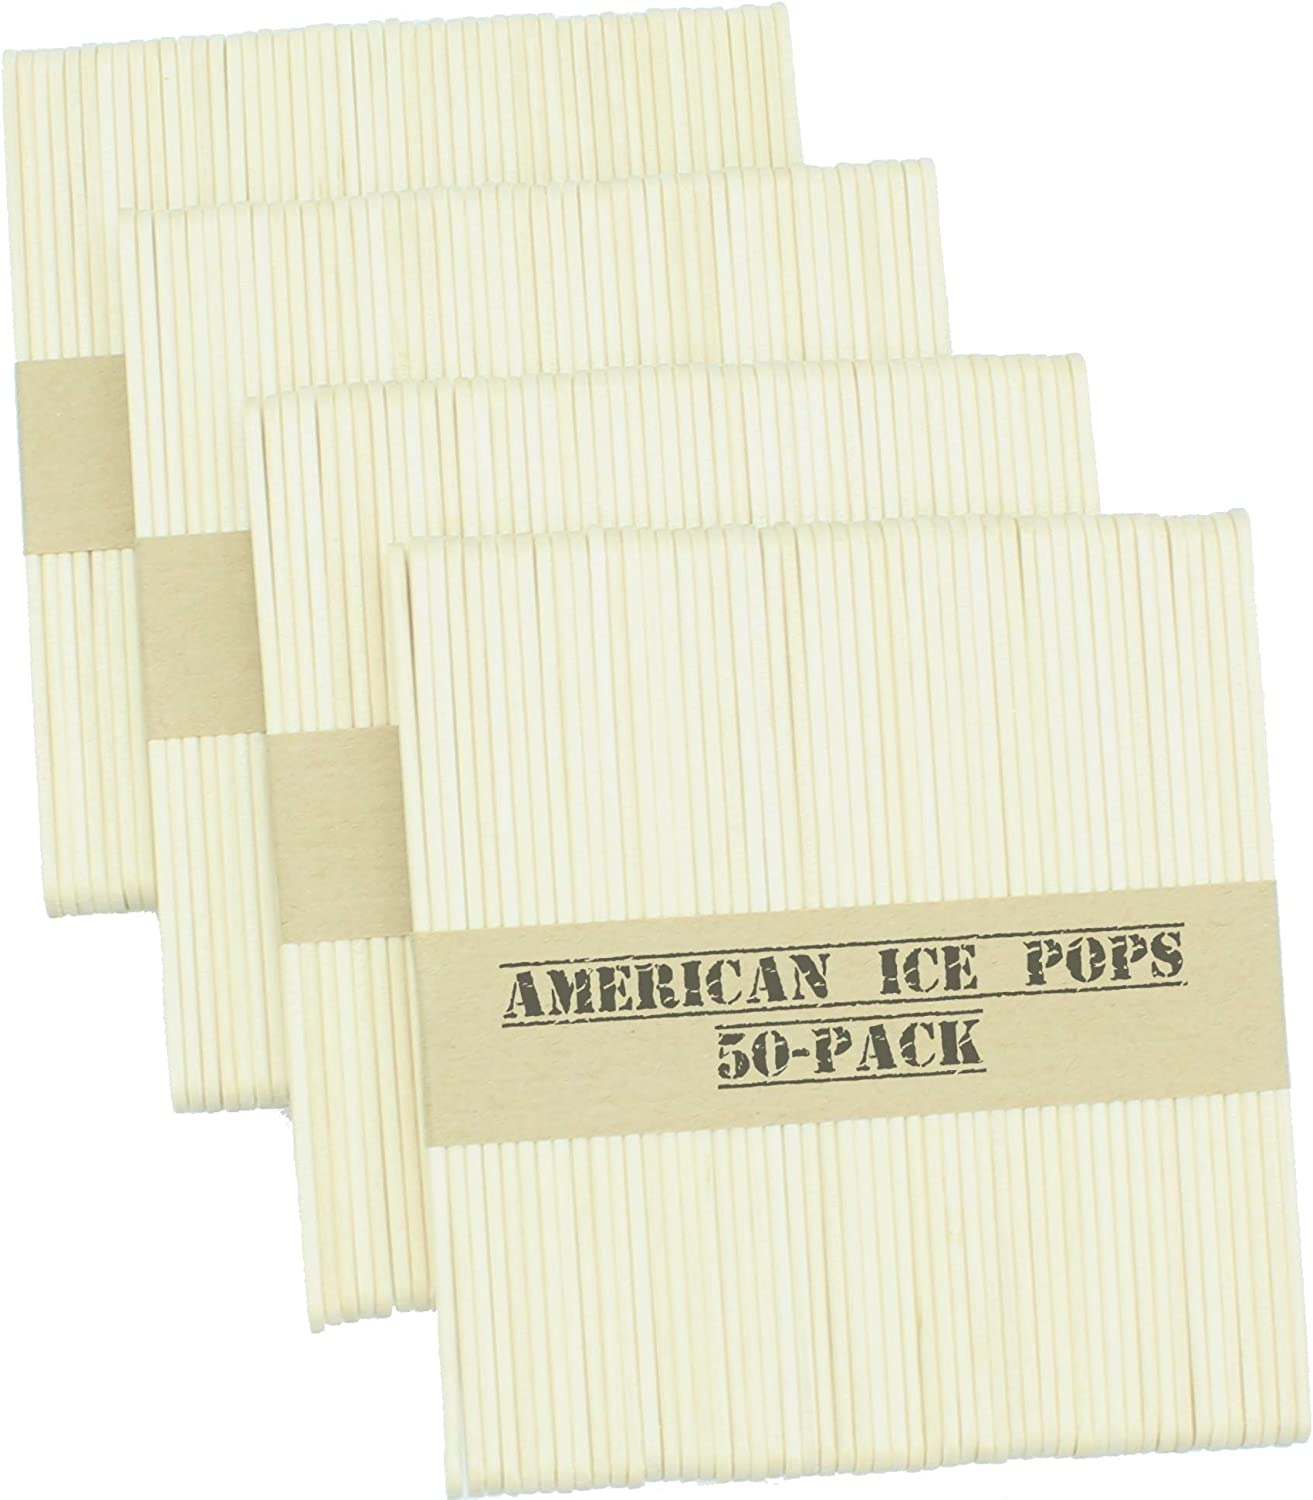 American Ice Pop Maker - Frozen Popsicle Mold Wooden Ice Cream Sticks (200 STICKS, Natural)